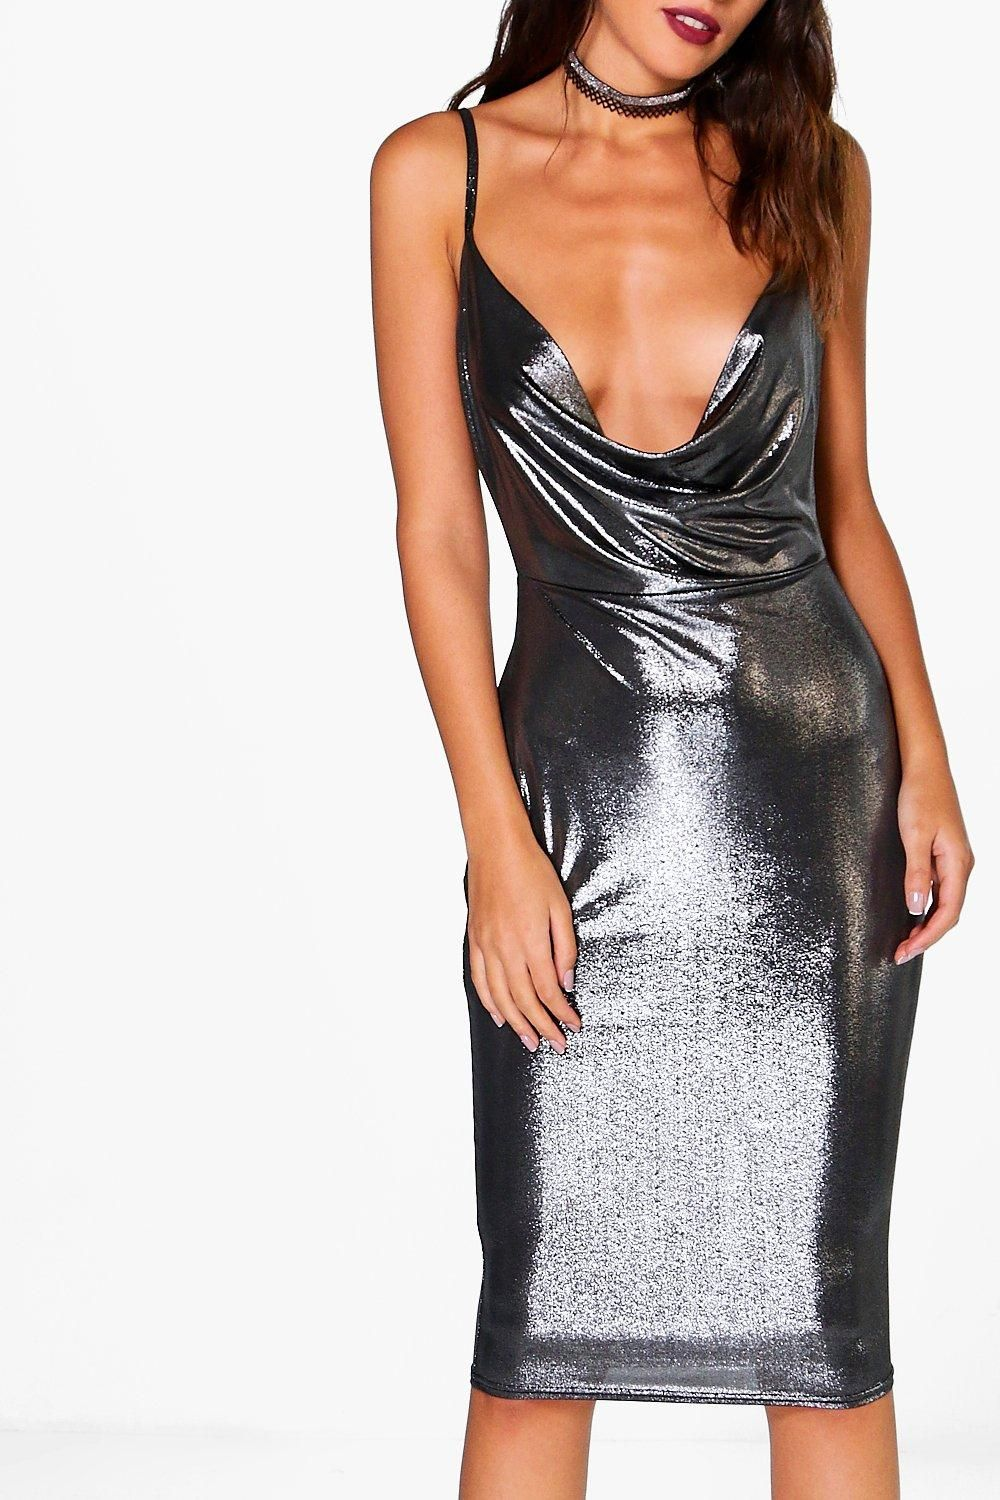 fc5aa88b432c Get dance floor-ready in an entrance-making evening dress. Look knock-out  on nights out in figure-skimming bodycon fits, flowing maxi lengths and  stunning ...